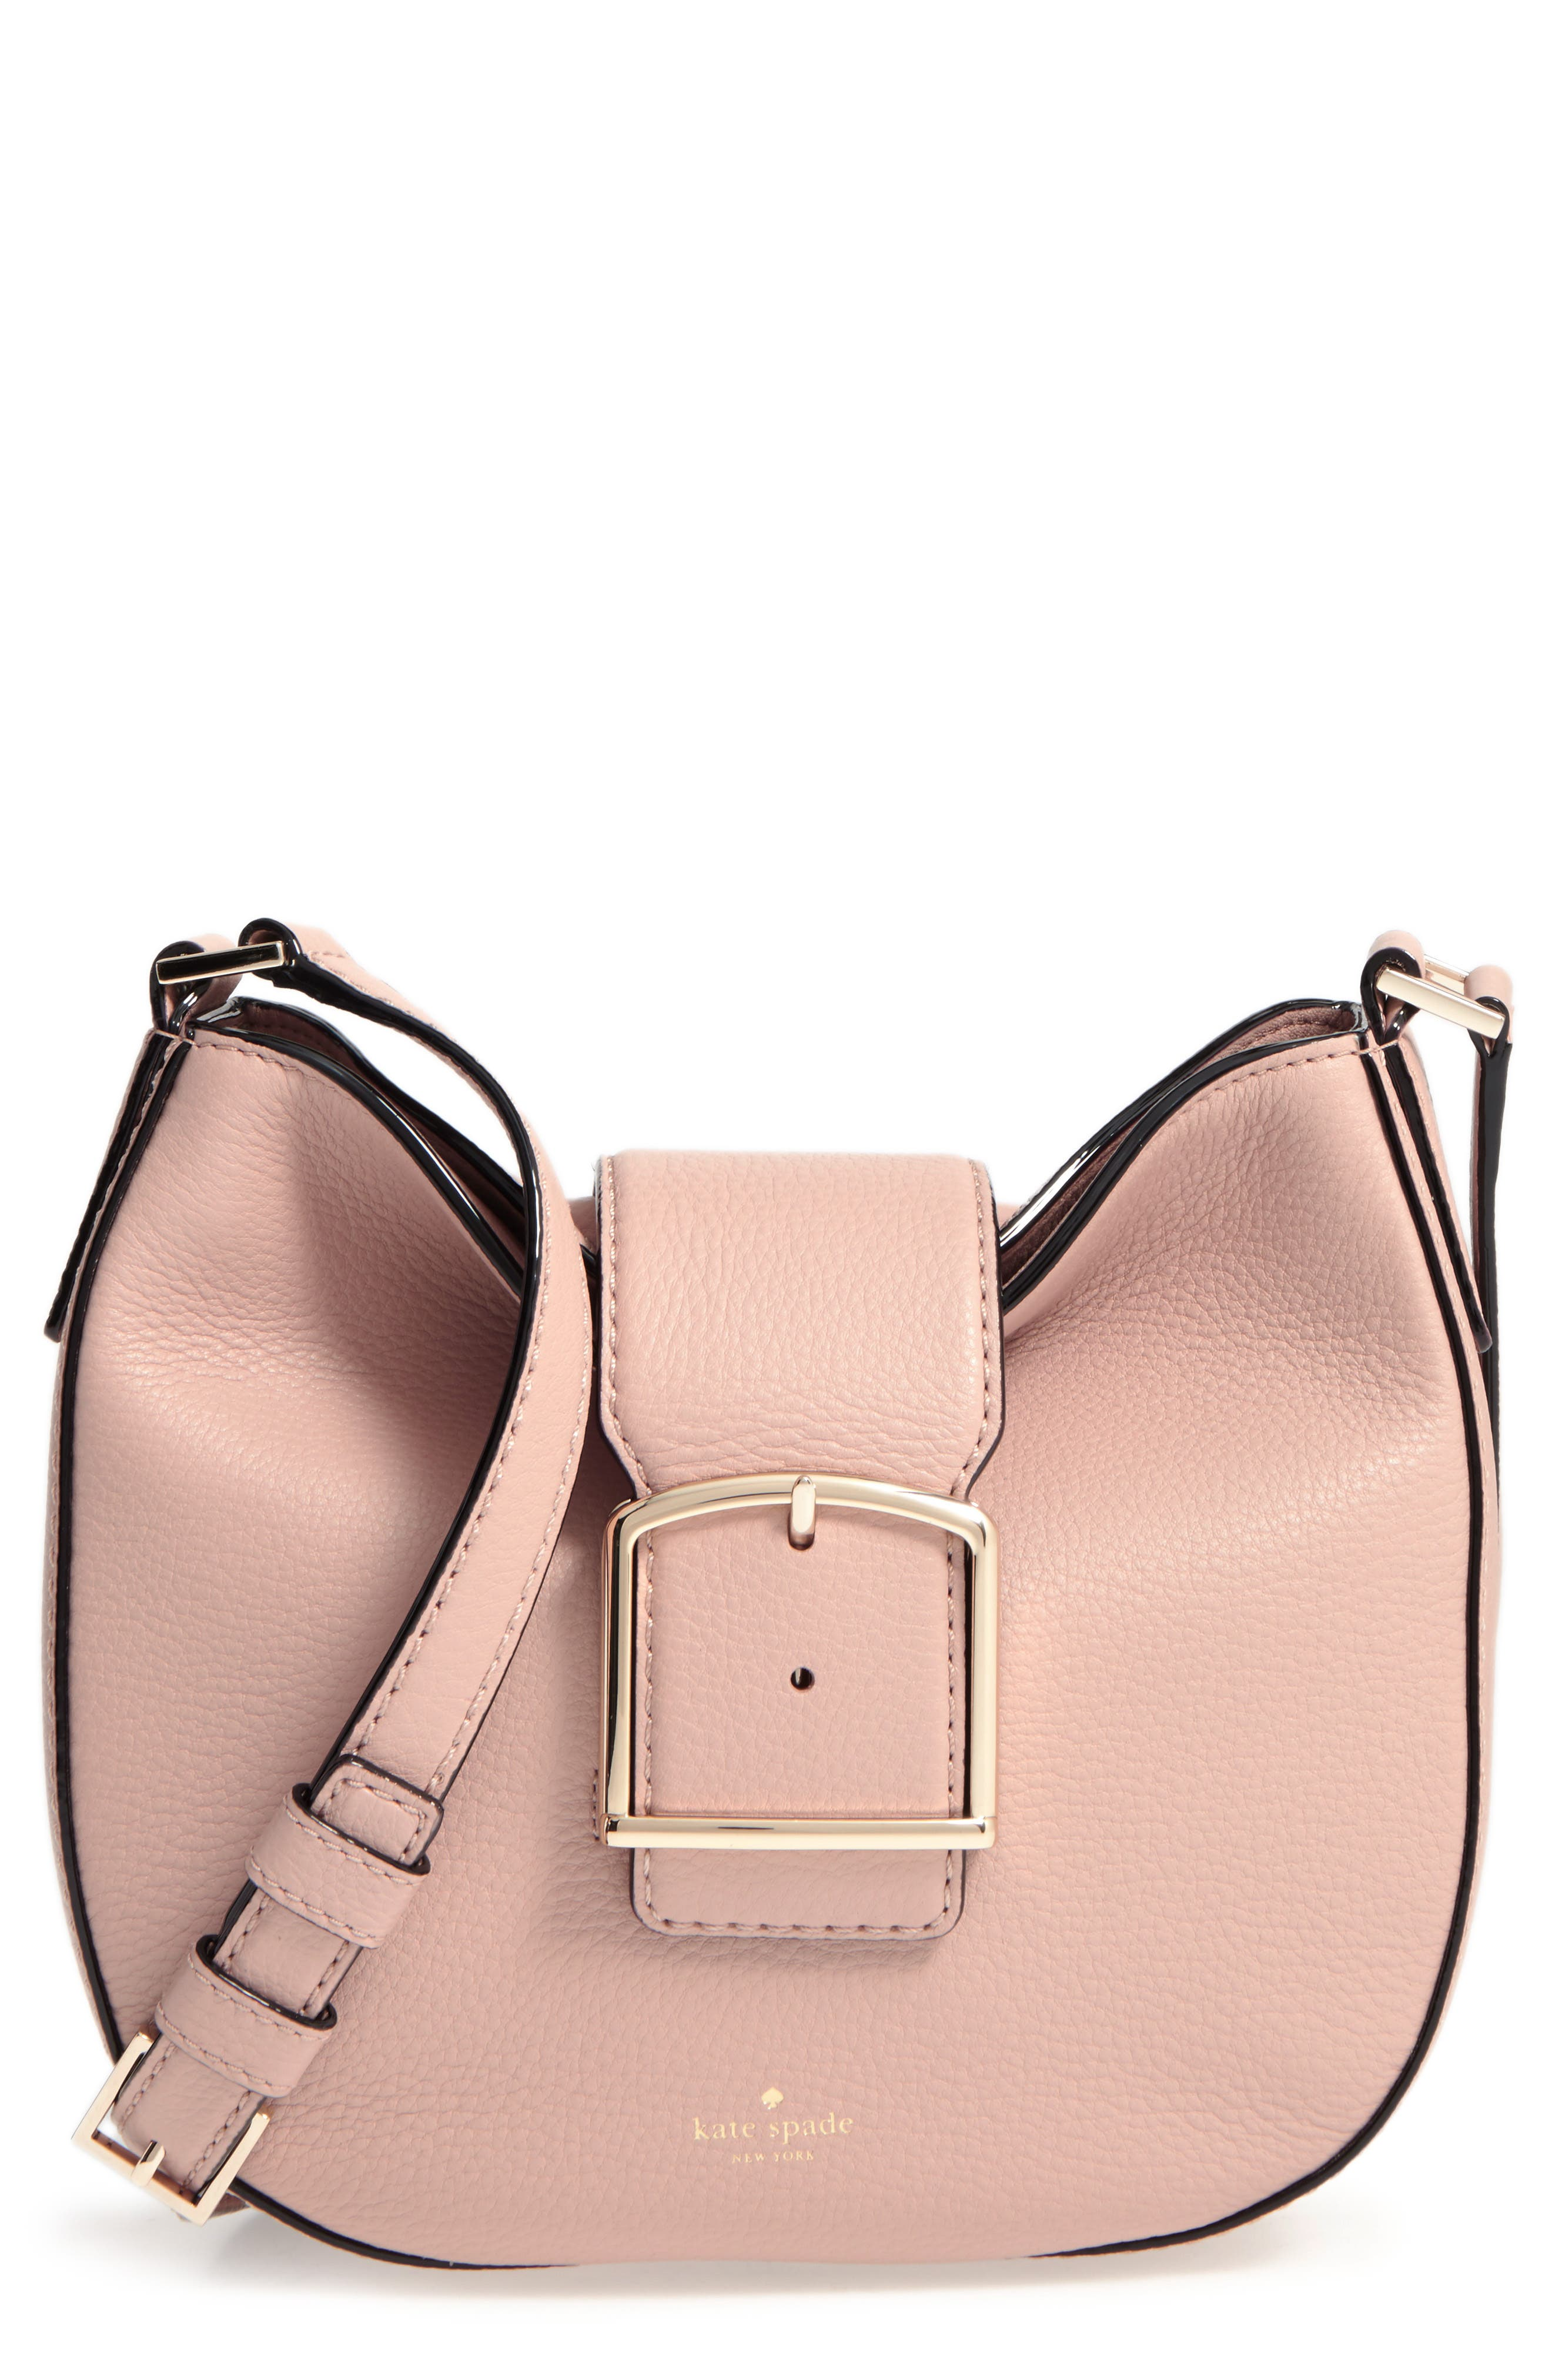 Alternate Image 1 Selected - kate spade new york healy lane lilith leather crossbody bag